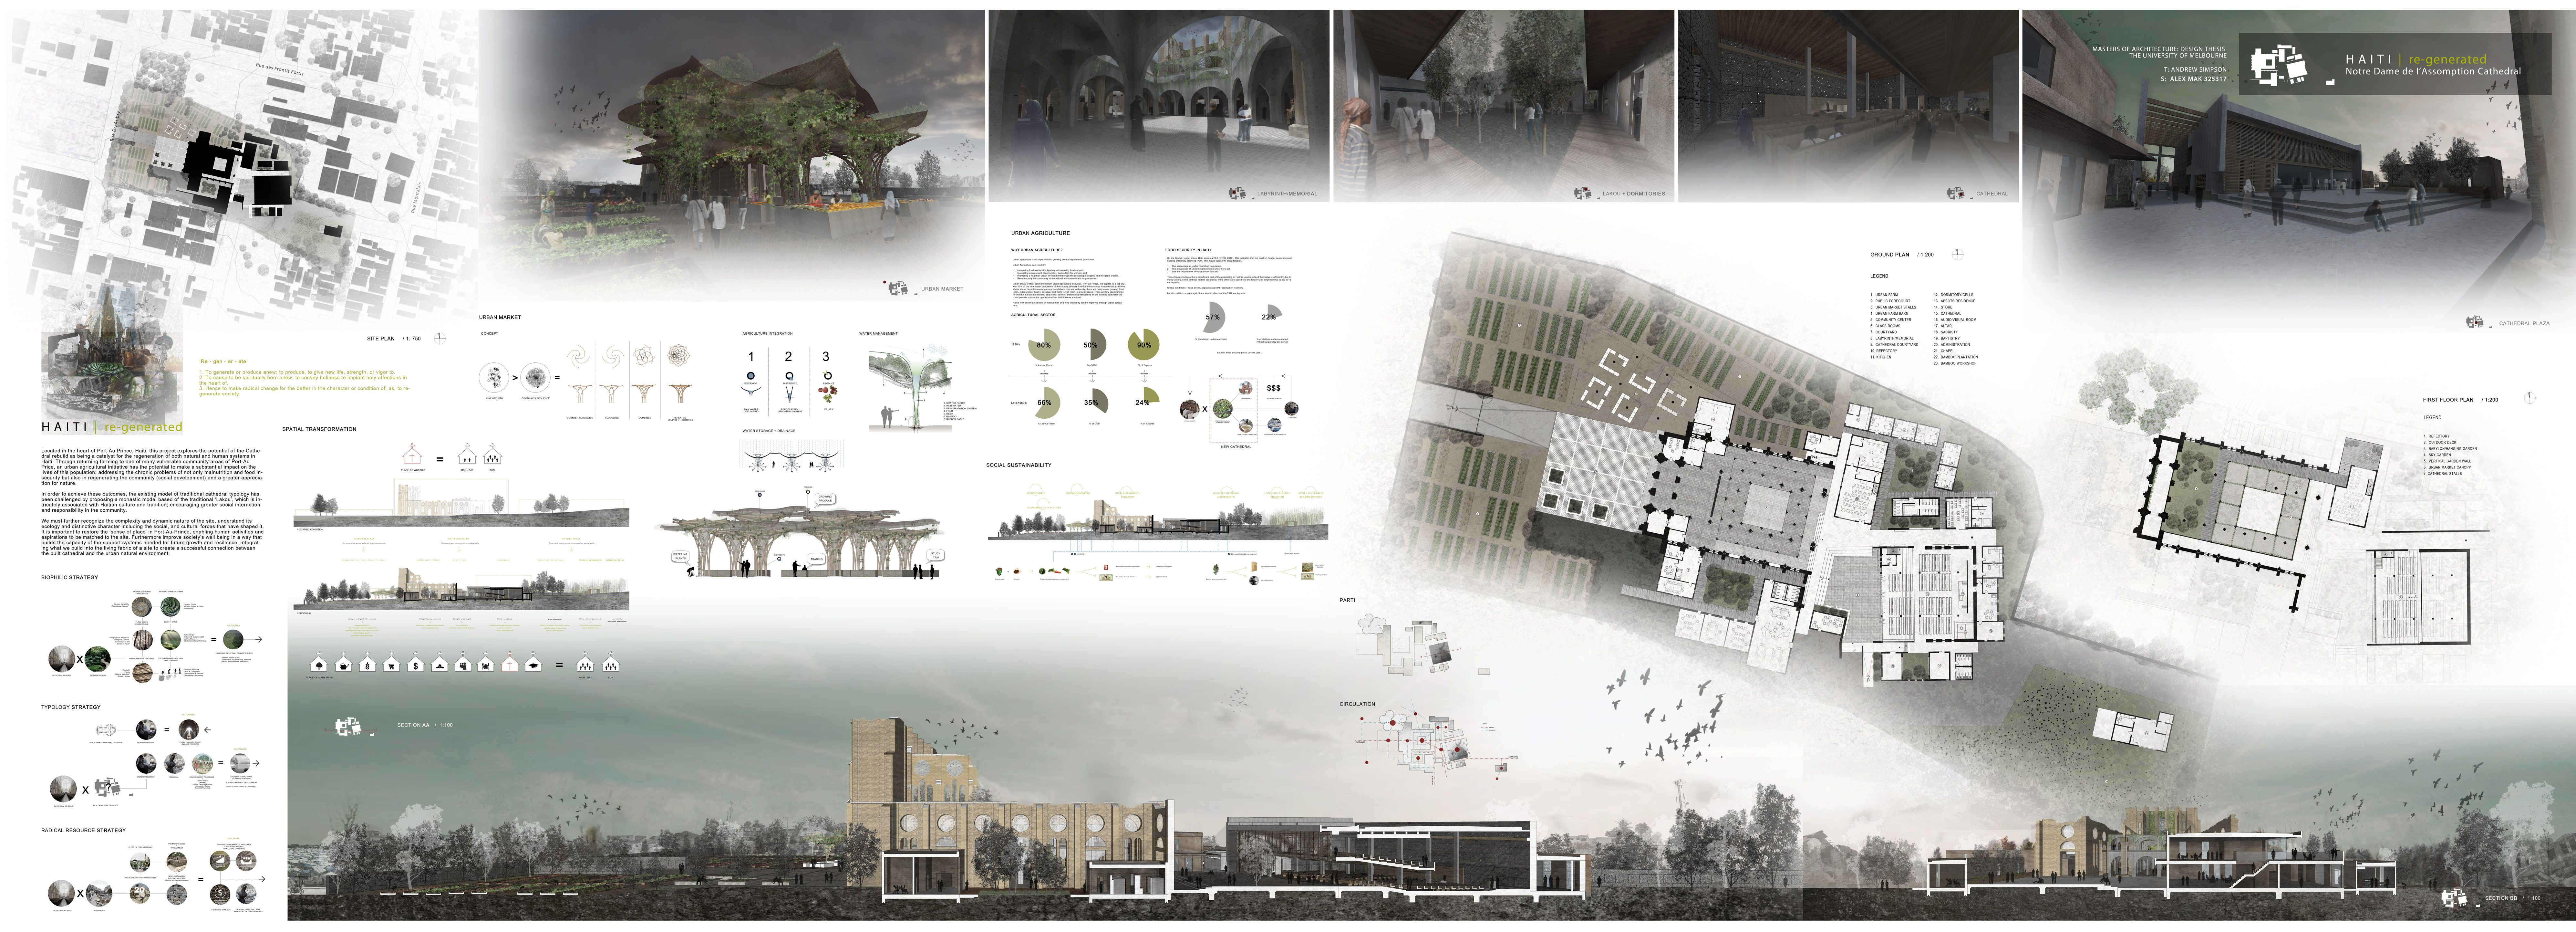 13 architecture design presentation images architecture for Architectural layout of a house